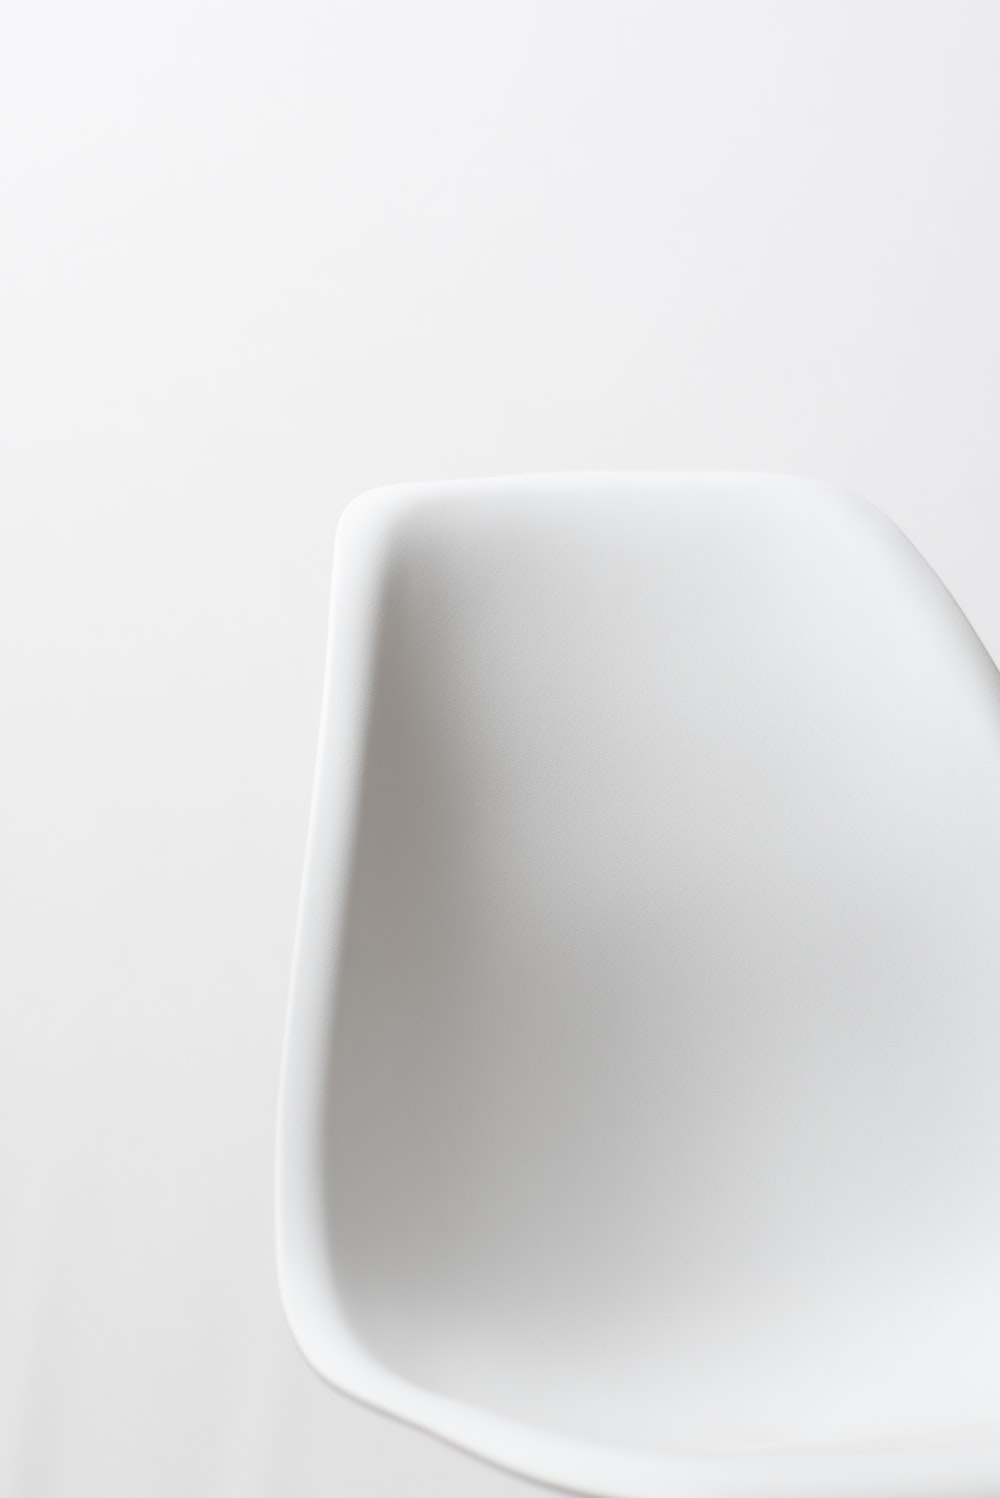 white plastic container on white surface